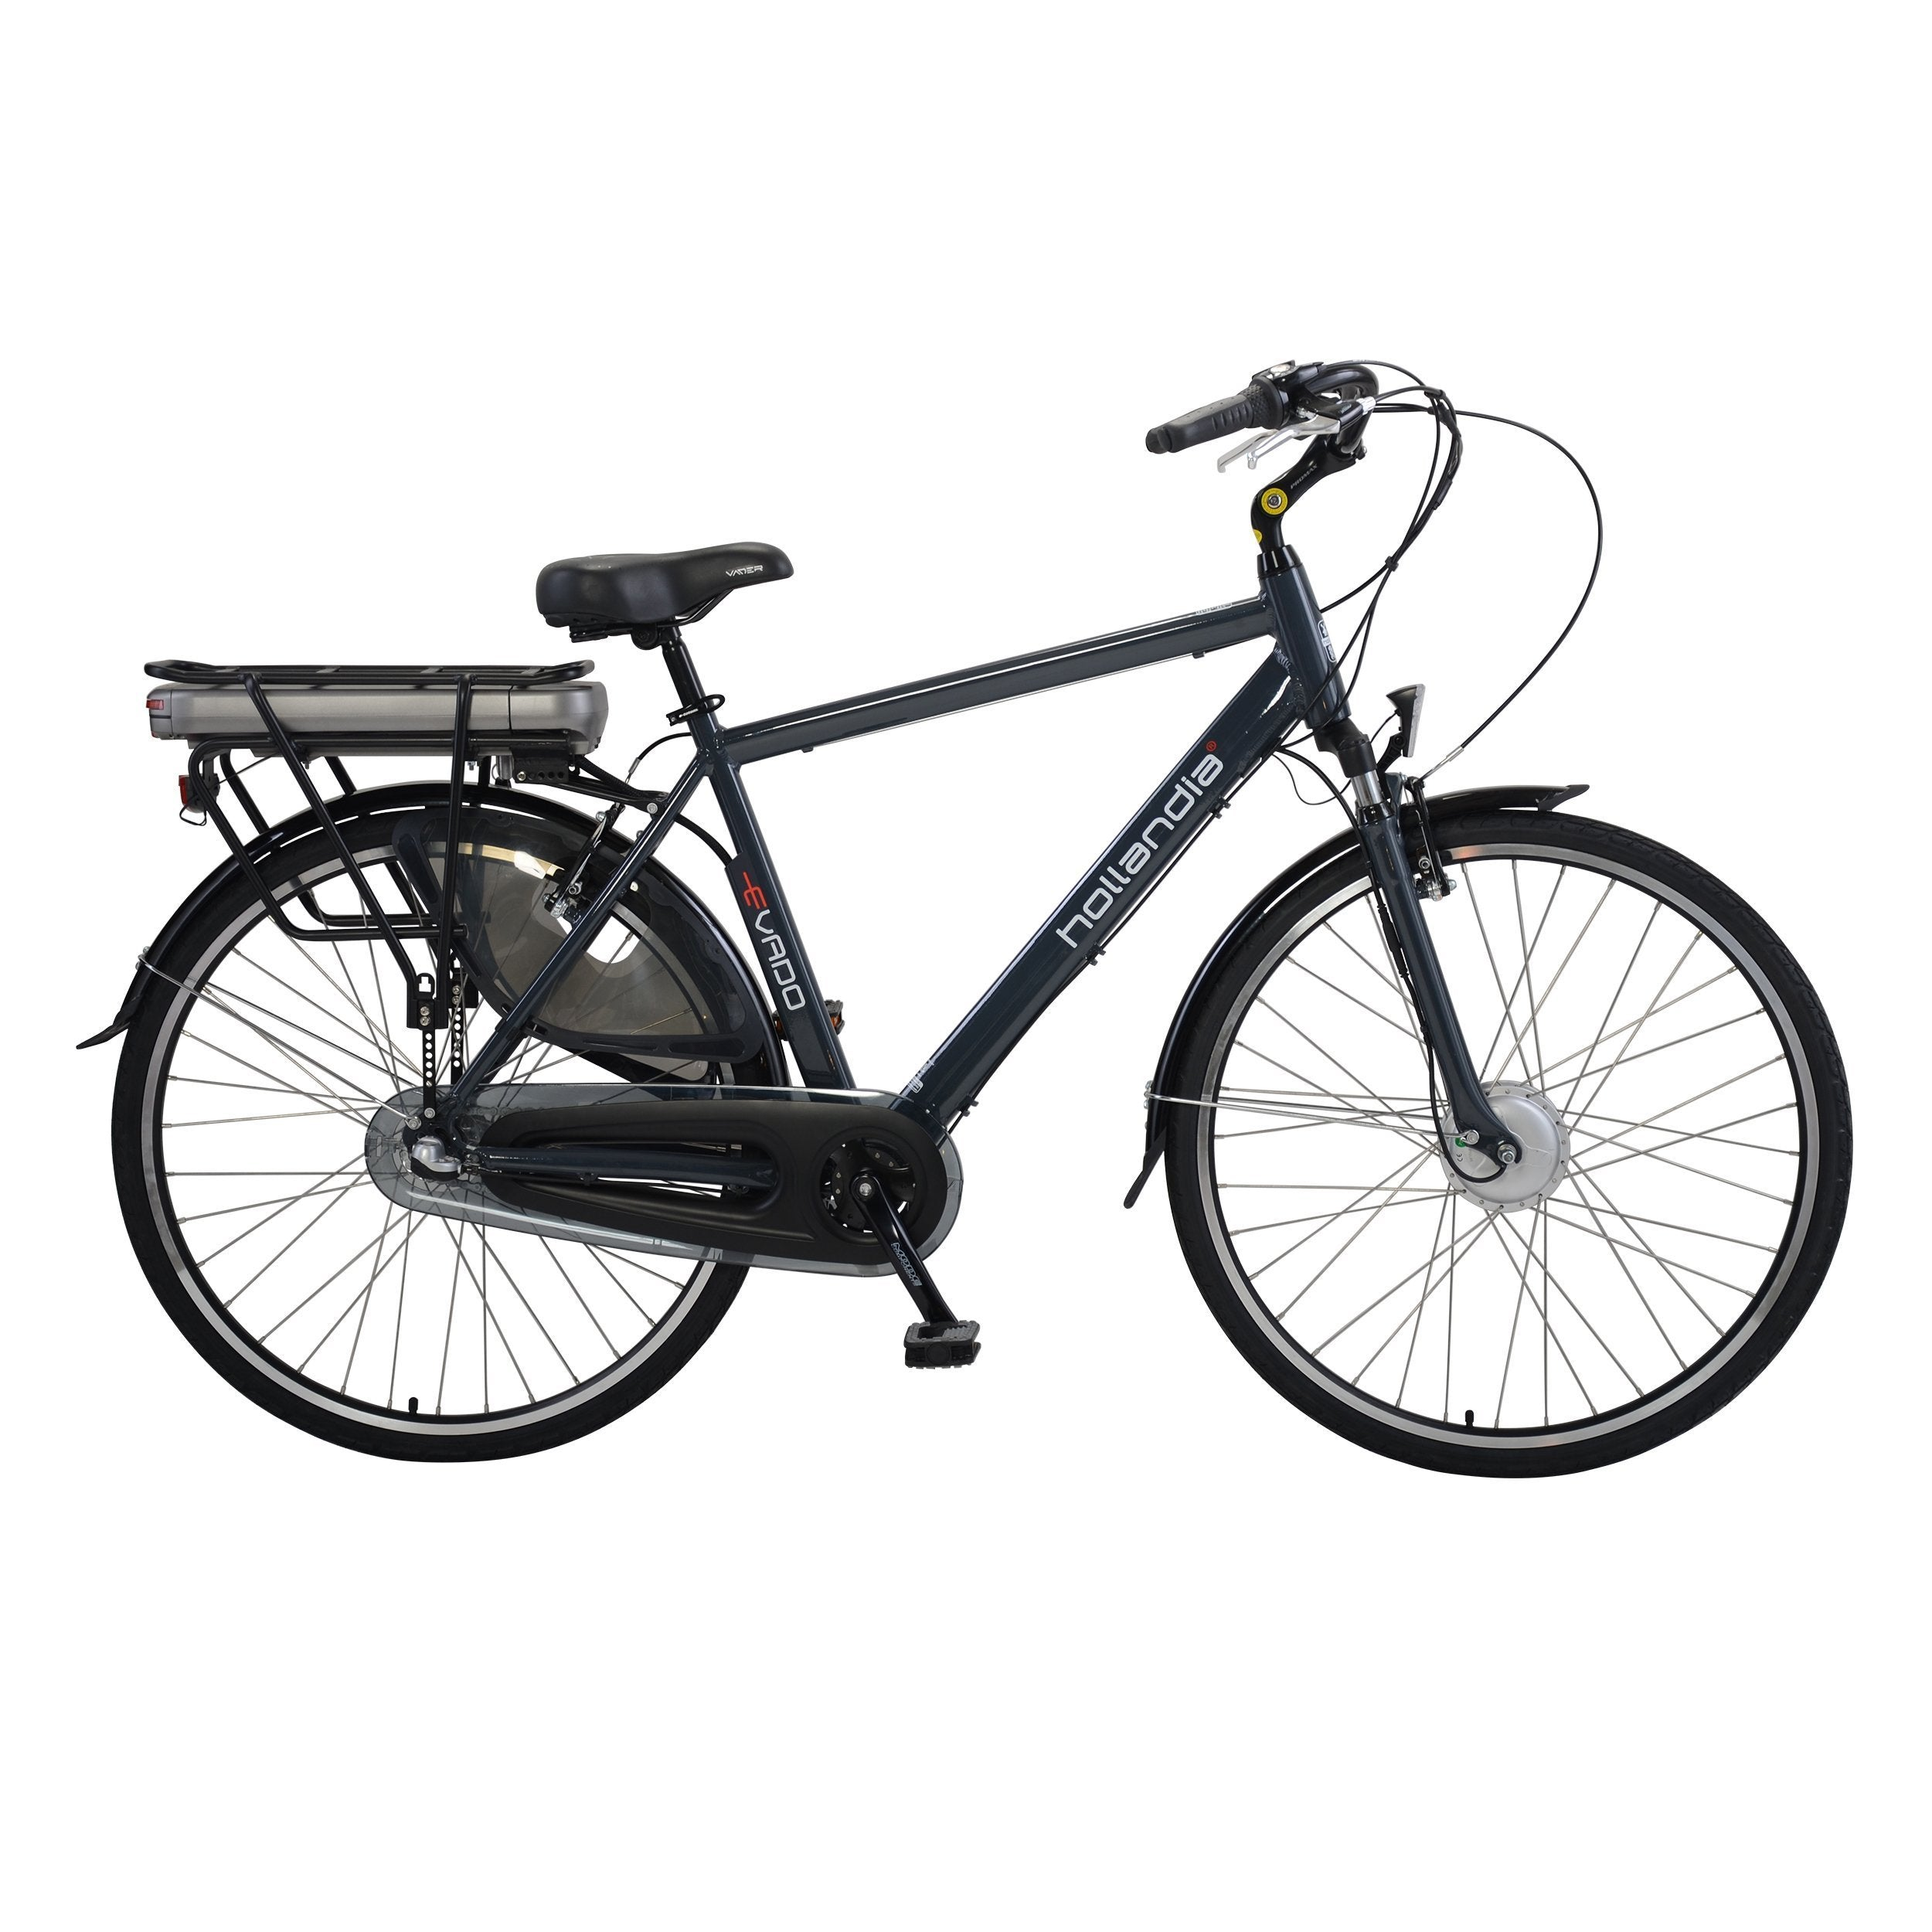 Hollandia Evado Nexus 3 Speed Men's 700c Charcoal Gray Electric Bicycle - Electric Bike 19-Inch Ridetique.com